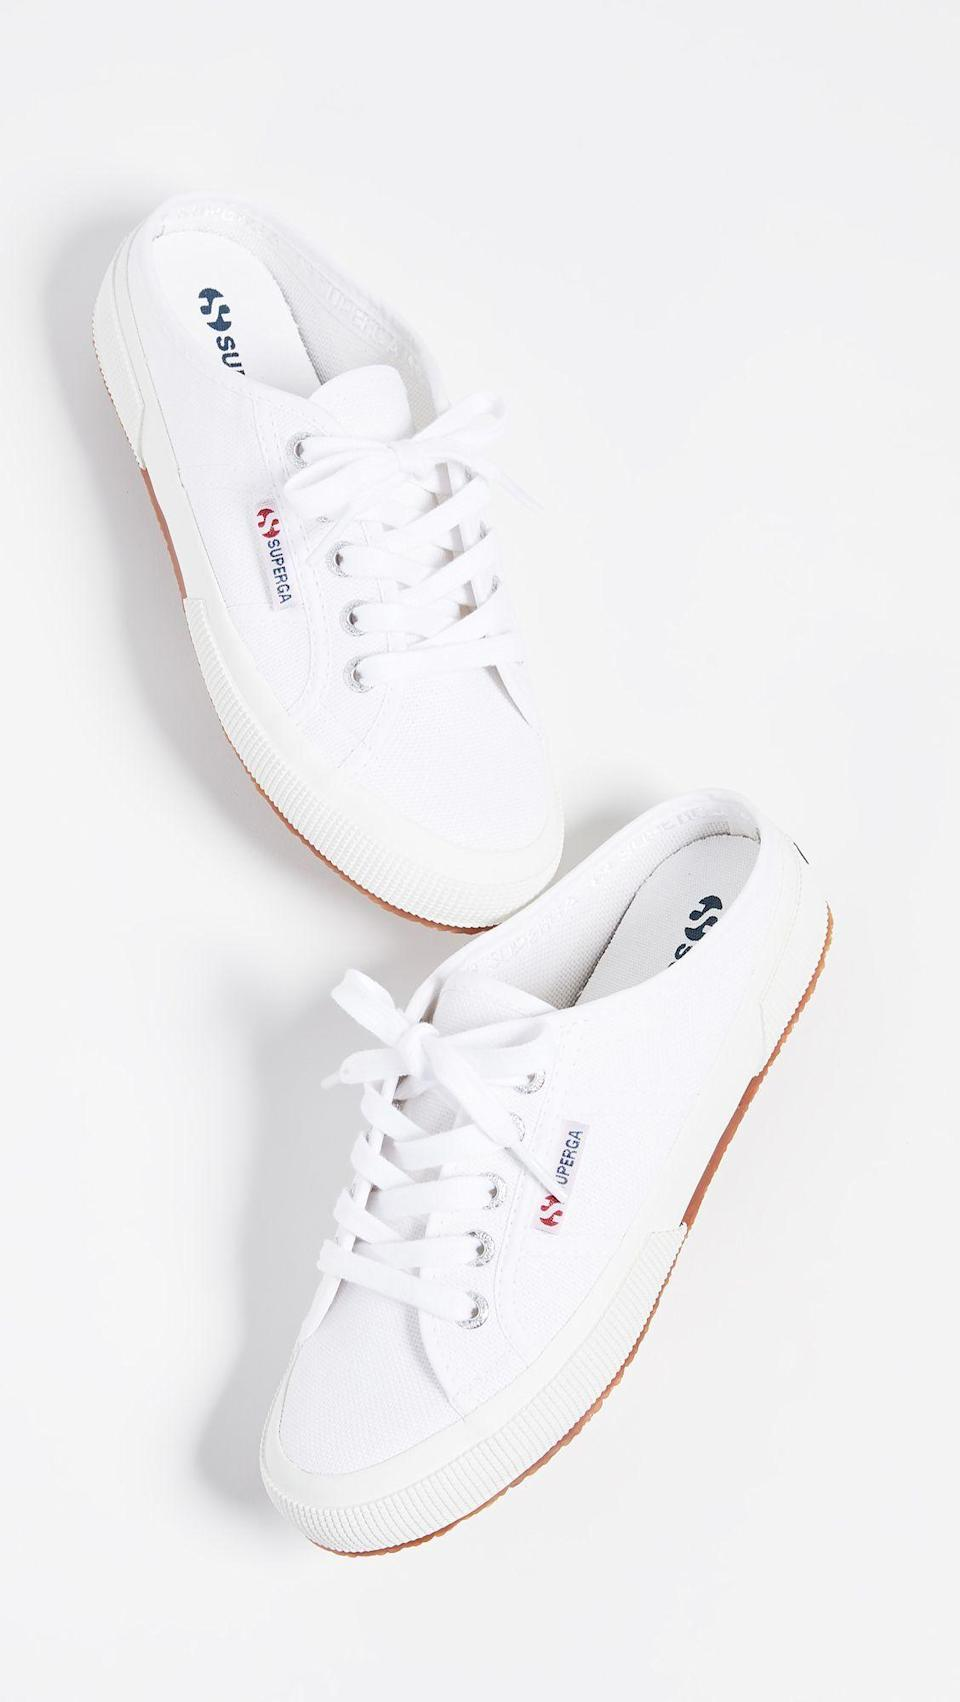 "<p><strong>Superga</strong></p><p>shopbop.com</p><p><strong>$65.00</strong></p><p><a href=""https://go.redirectingat.com?id=74968X1596630&url=https%3A%2F%2Fwww.shopbop.com%2F2402-cotw-mule-sneakers-superga%2Fvp%2Fv%3D1%2F1523413179.htm&sref=https%3A%2F%2Fwww.seventeen.com%2Ffashion%2Ftrends%2Fg32826210%2Fclassic-white-sneakers%2F"" rel=""nofollow noopener"" target=""_blank"" data-ylk=""slk:Shop Now"" class=""link rapid-noclick-resp"">Shop Now</a></p><p>White mule sneakers are so easy to slide on and kick off, making them your new favorite shoe.</p>"